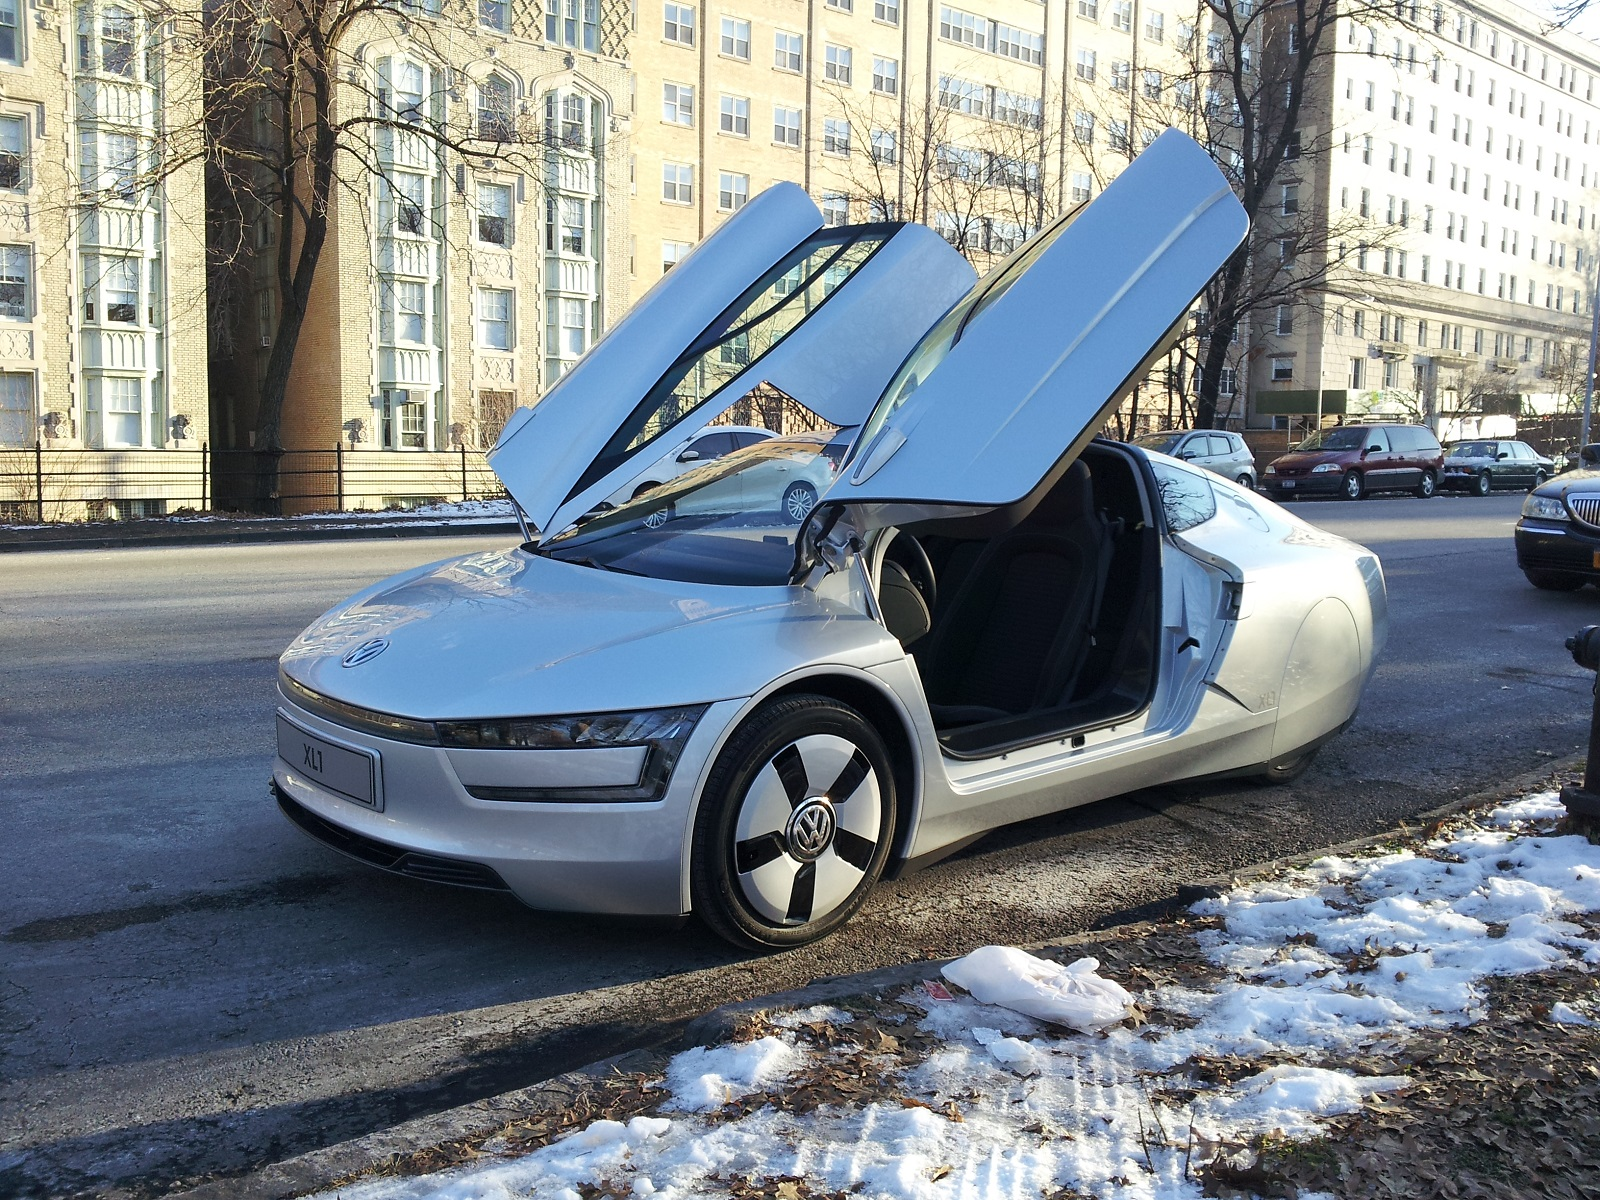 ultra efficient vw xl1 now an urban legend debunked by snopes. Black Bedroom Furniture Sets. Home Design Ideas